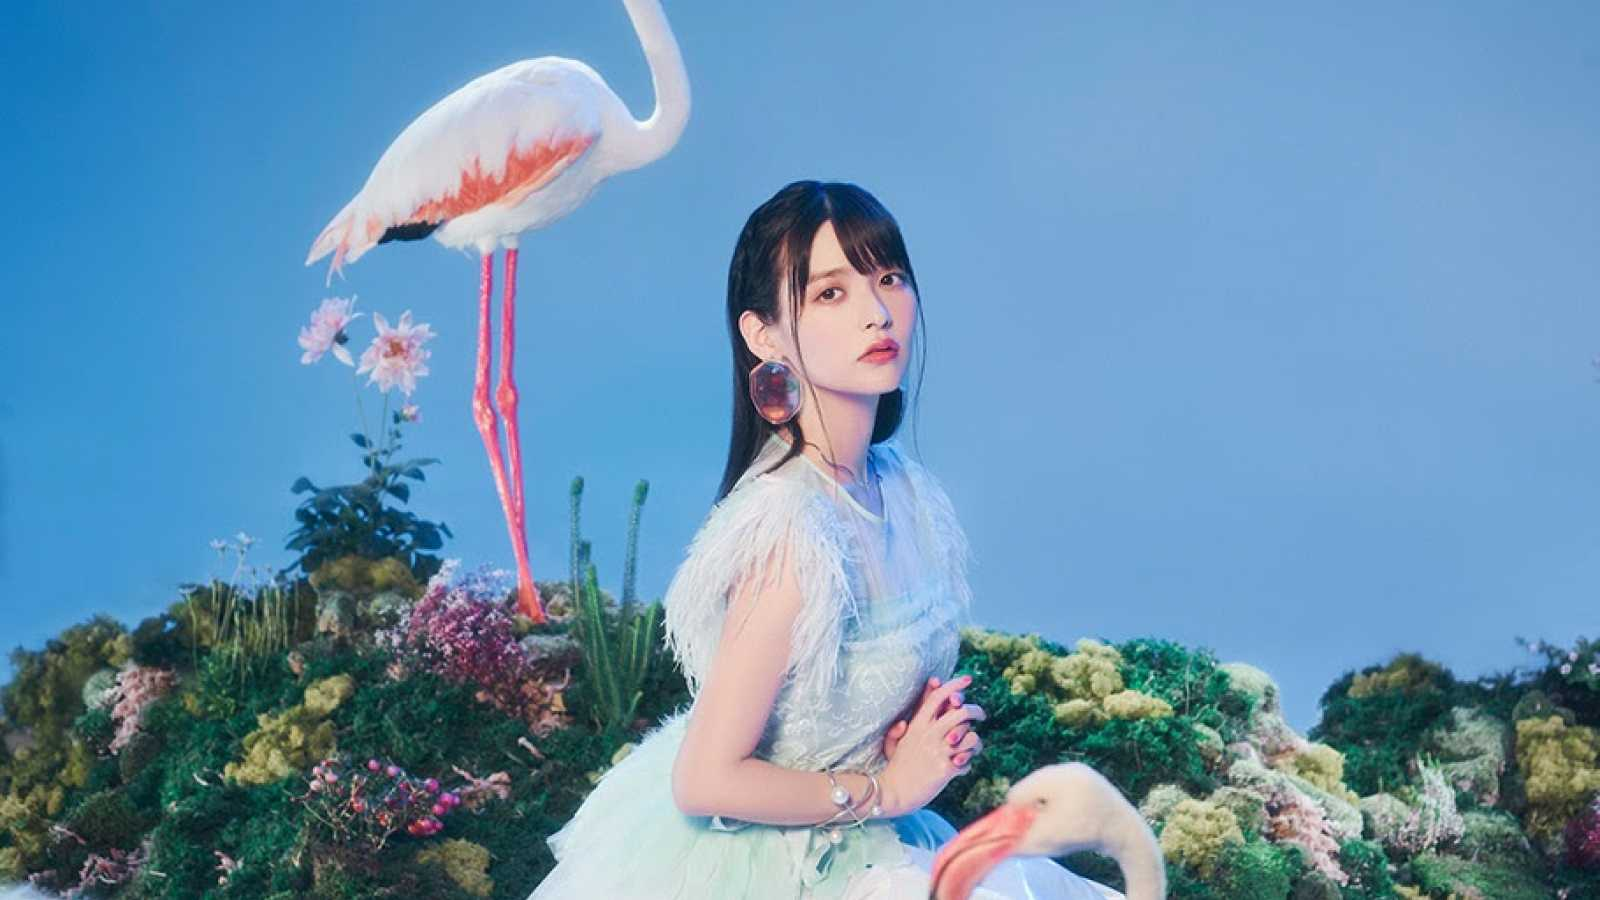 Nouveau single de Sumire Uesaka © KING RECORD CO., LTD. All rights reserved.